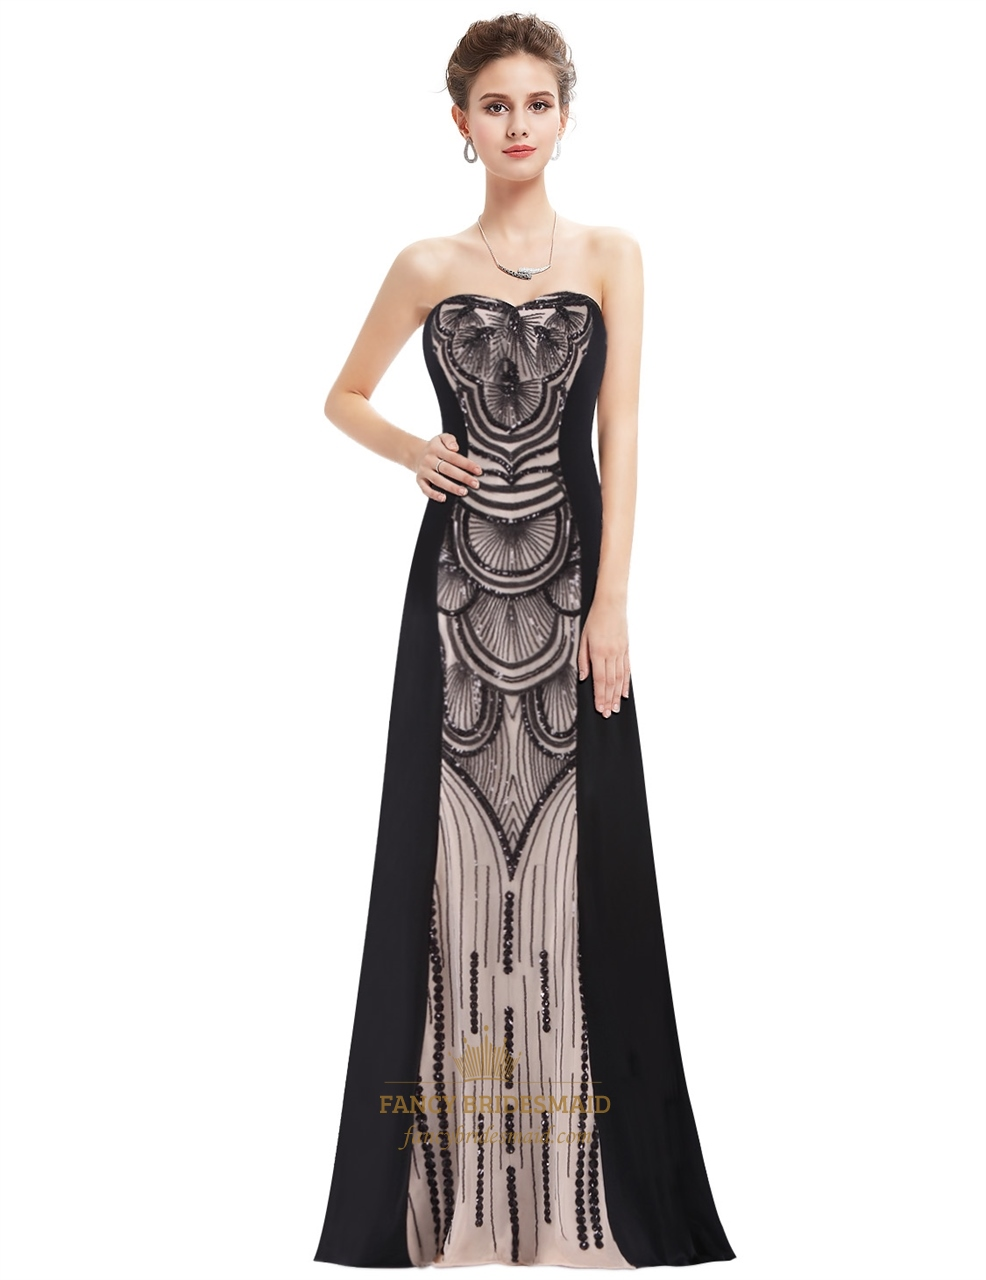 Strapless Sweetheart Sequin Embellished Floor Length